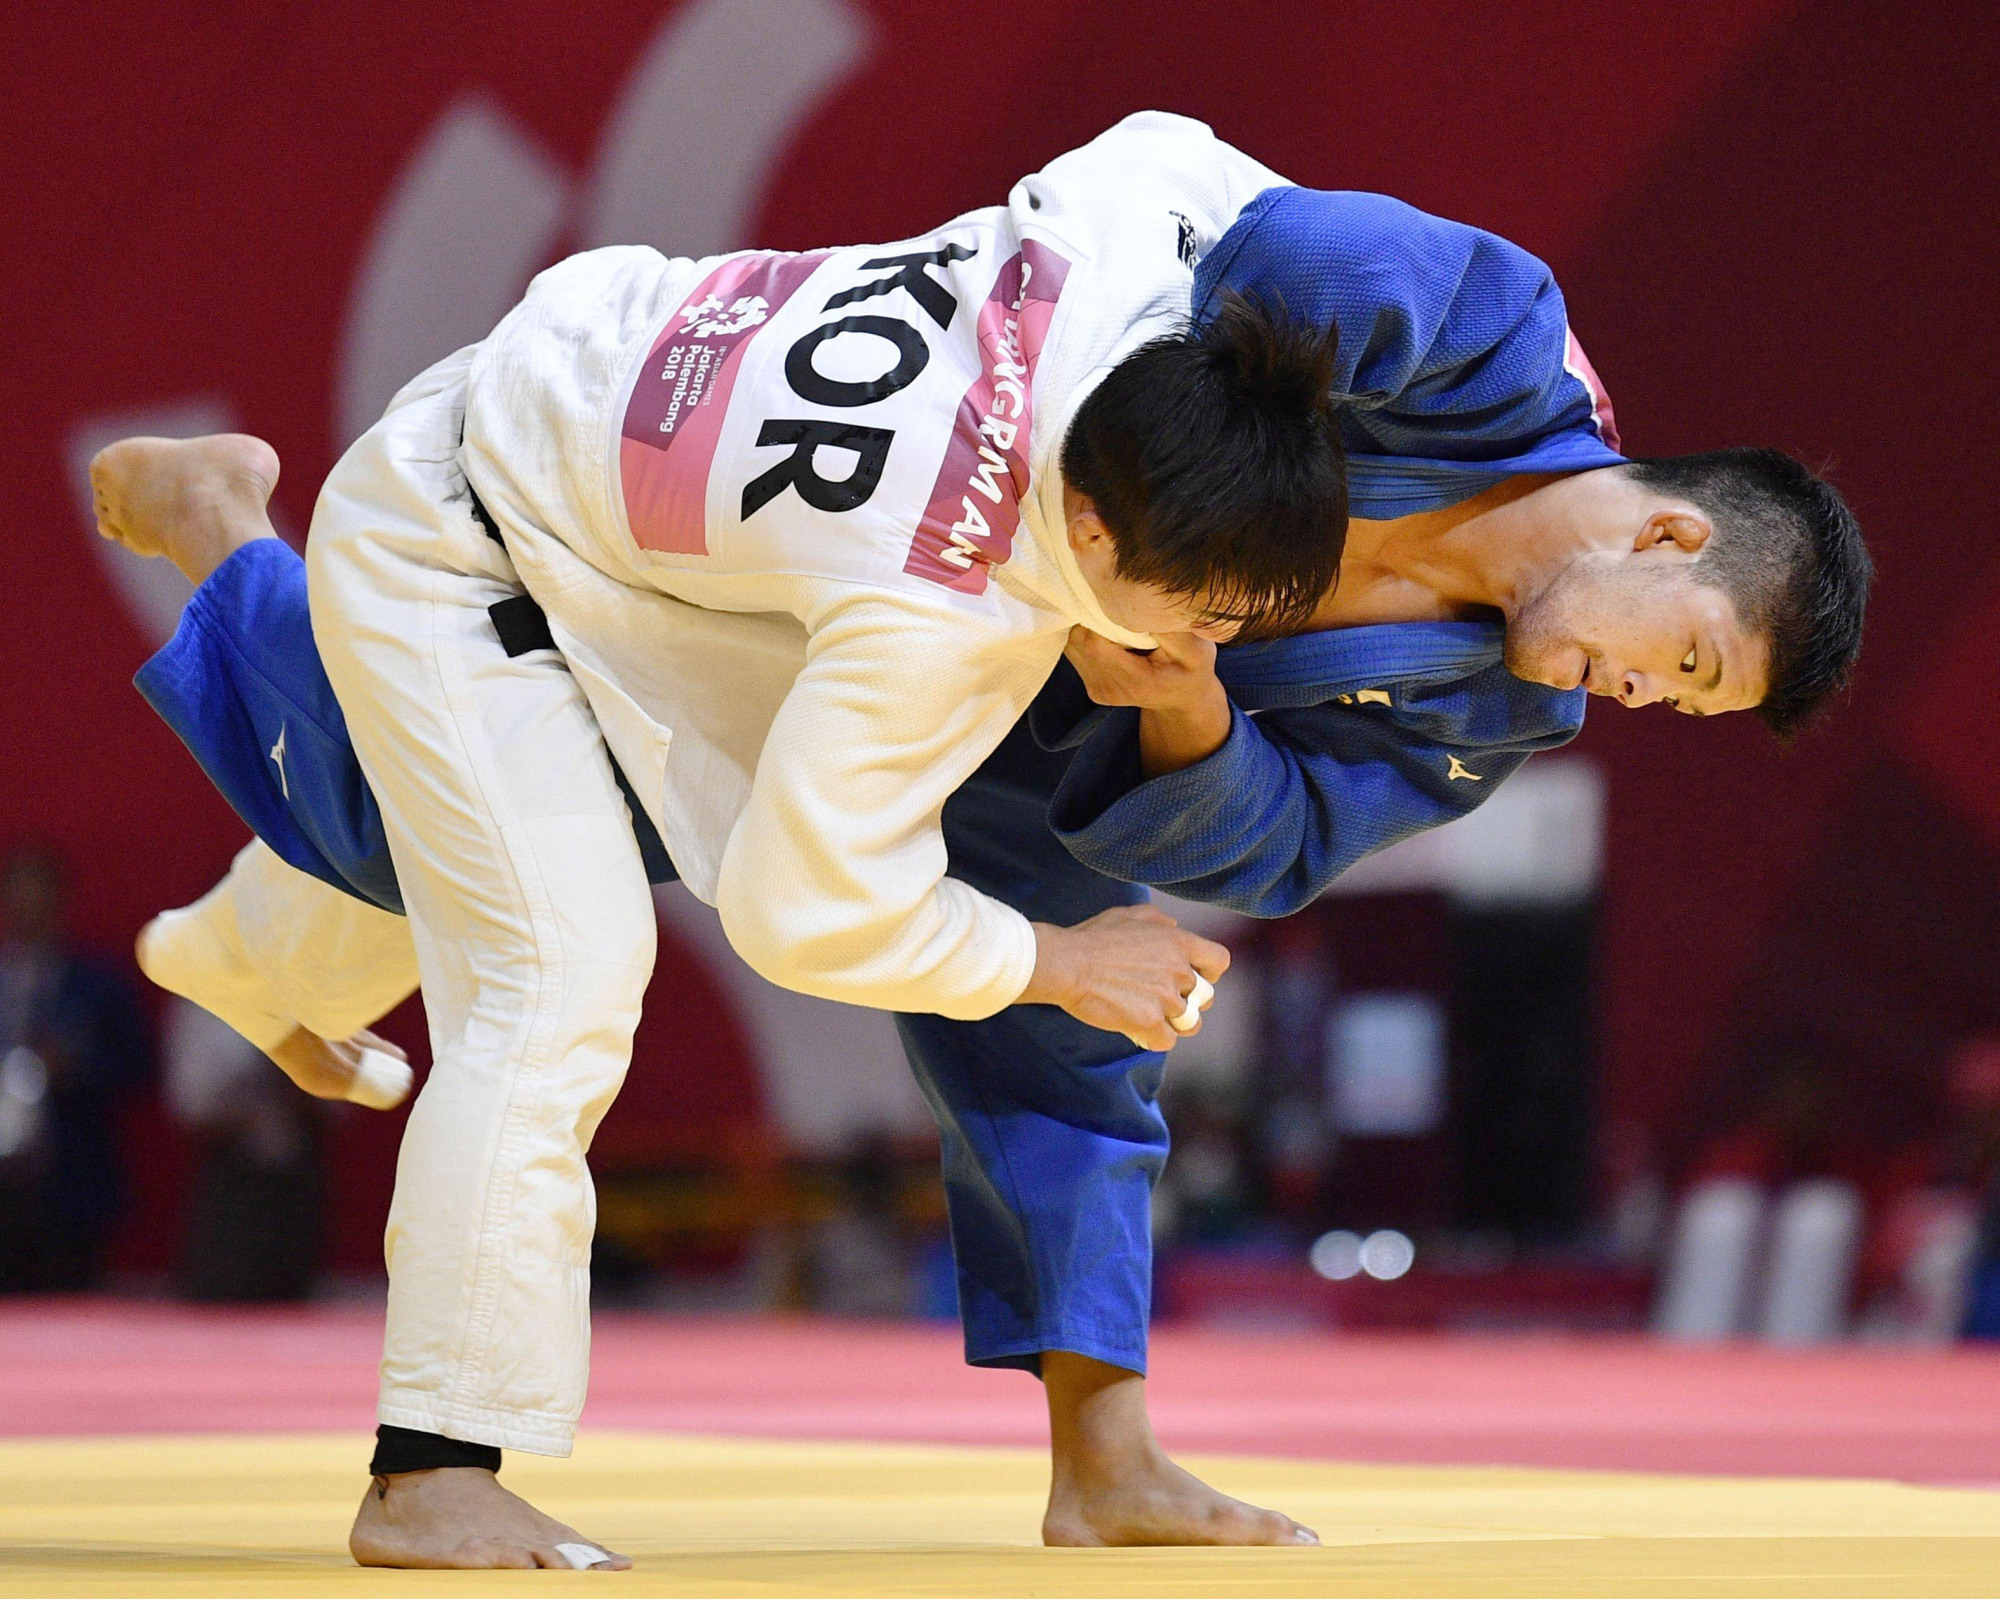 Shohei Ono (right) battles South Korea's An Chang-rim in the final of the 73-kg event at the Asian Games in Jakarta on Thursday. | KYODO